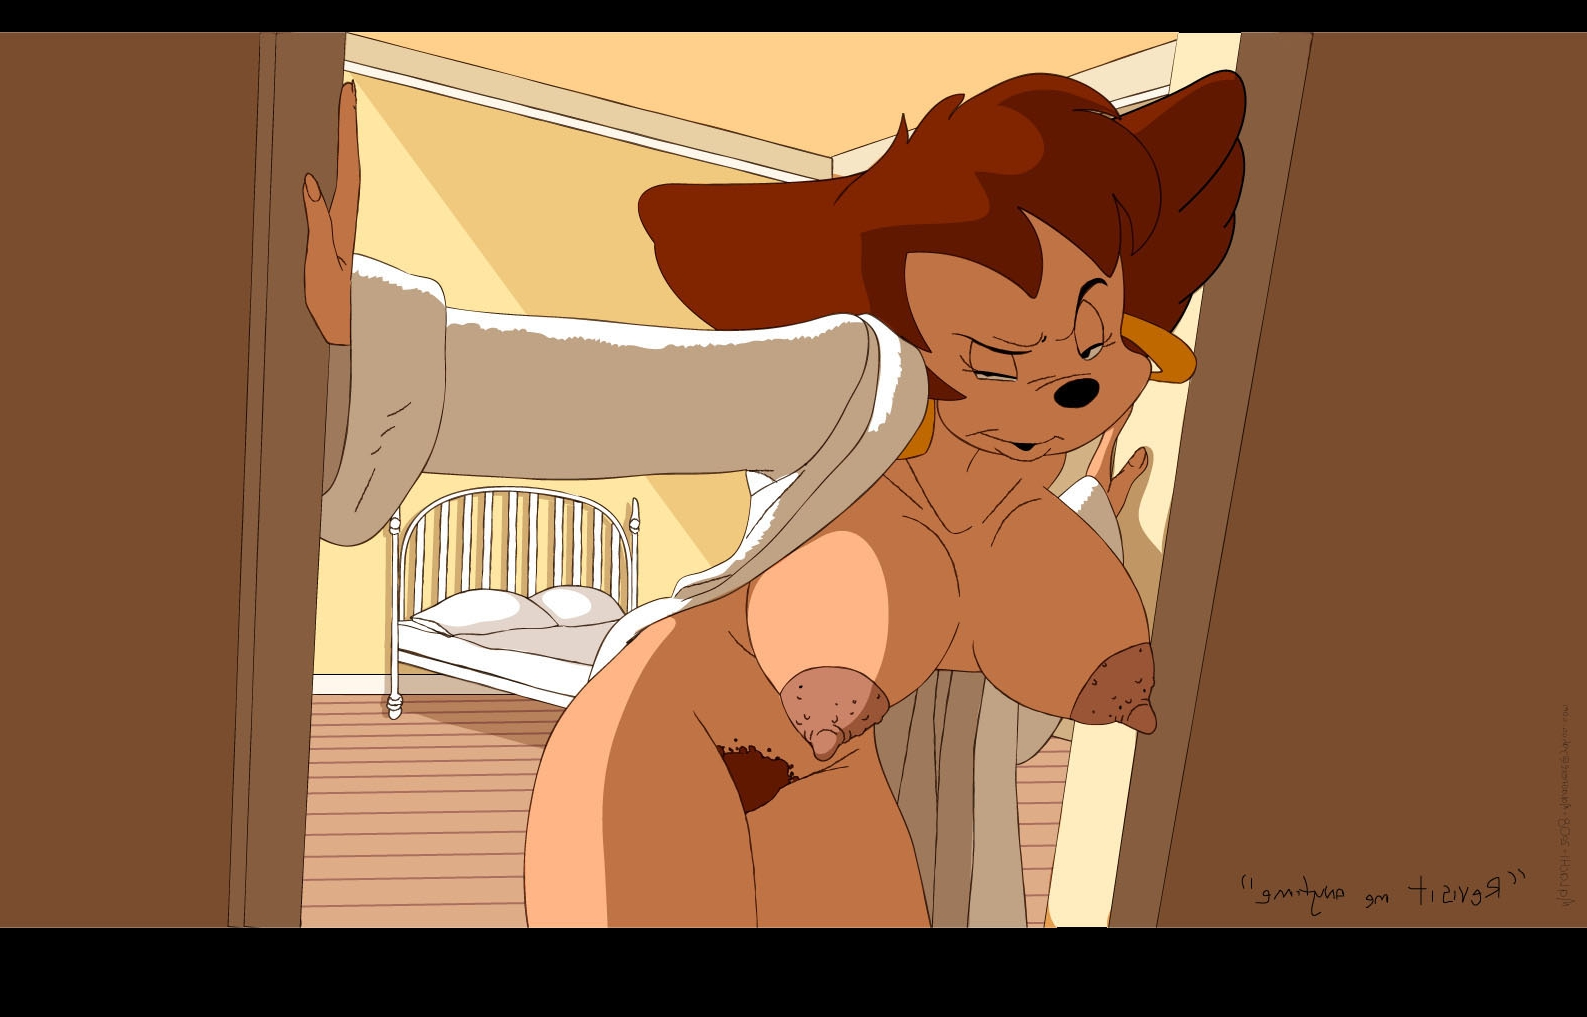 Thaman she goofed goof troop ongoing